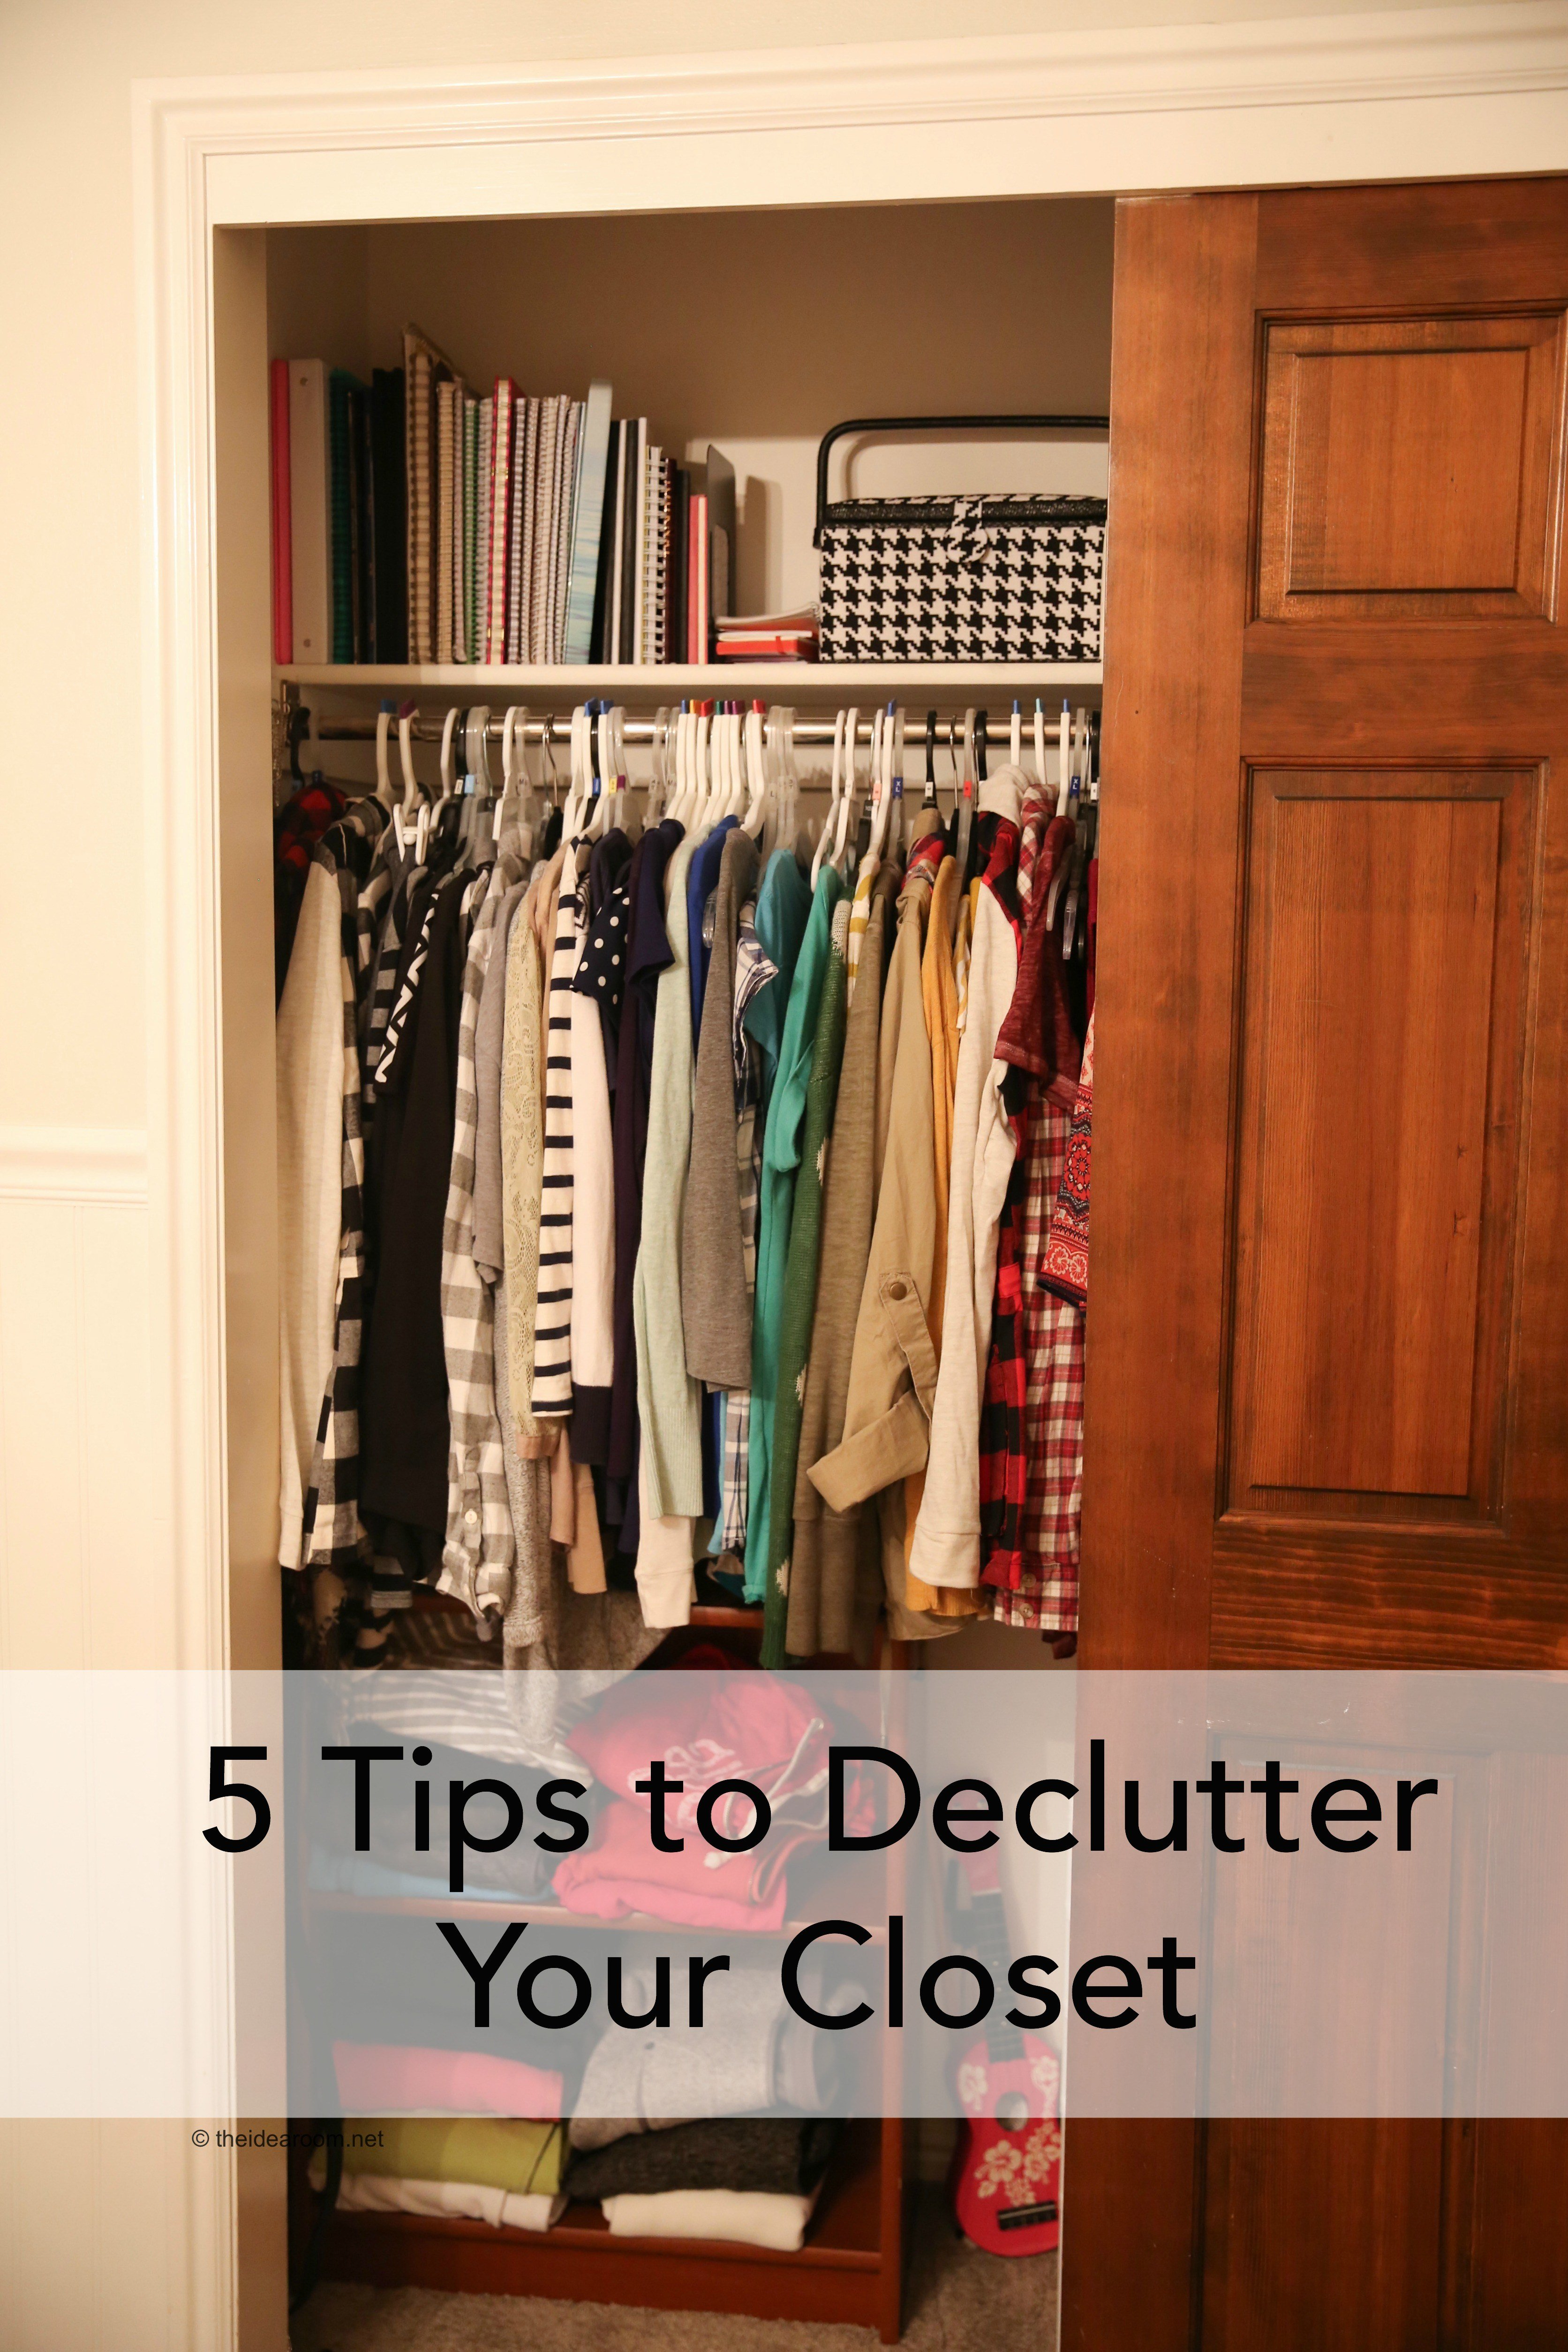 Best Tips To Declutter Your Closet With Pictures